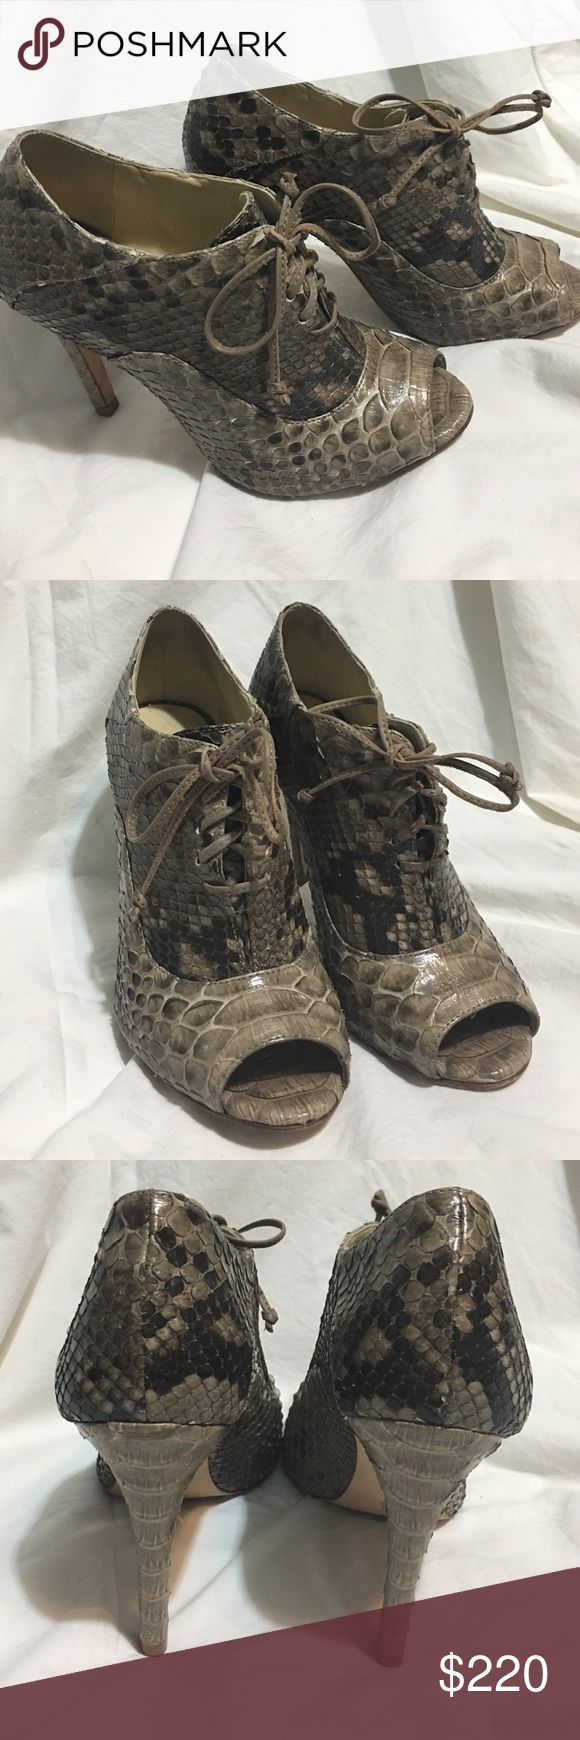 Alexandre Birman snakeskin booties Taupe python Alexandre Birman peep-toe lace-up booties. Size 5. Condition: Used but in good condition. Leather soles show some wear. Alexandre Birman Shoes Ankle Boots & Booties